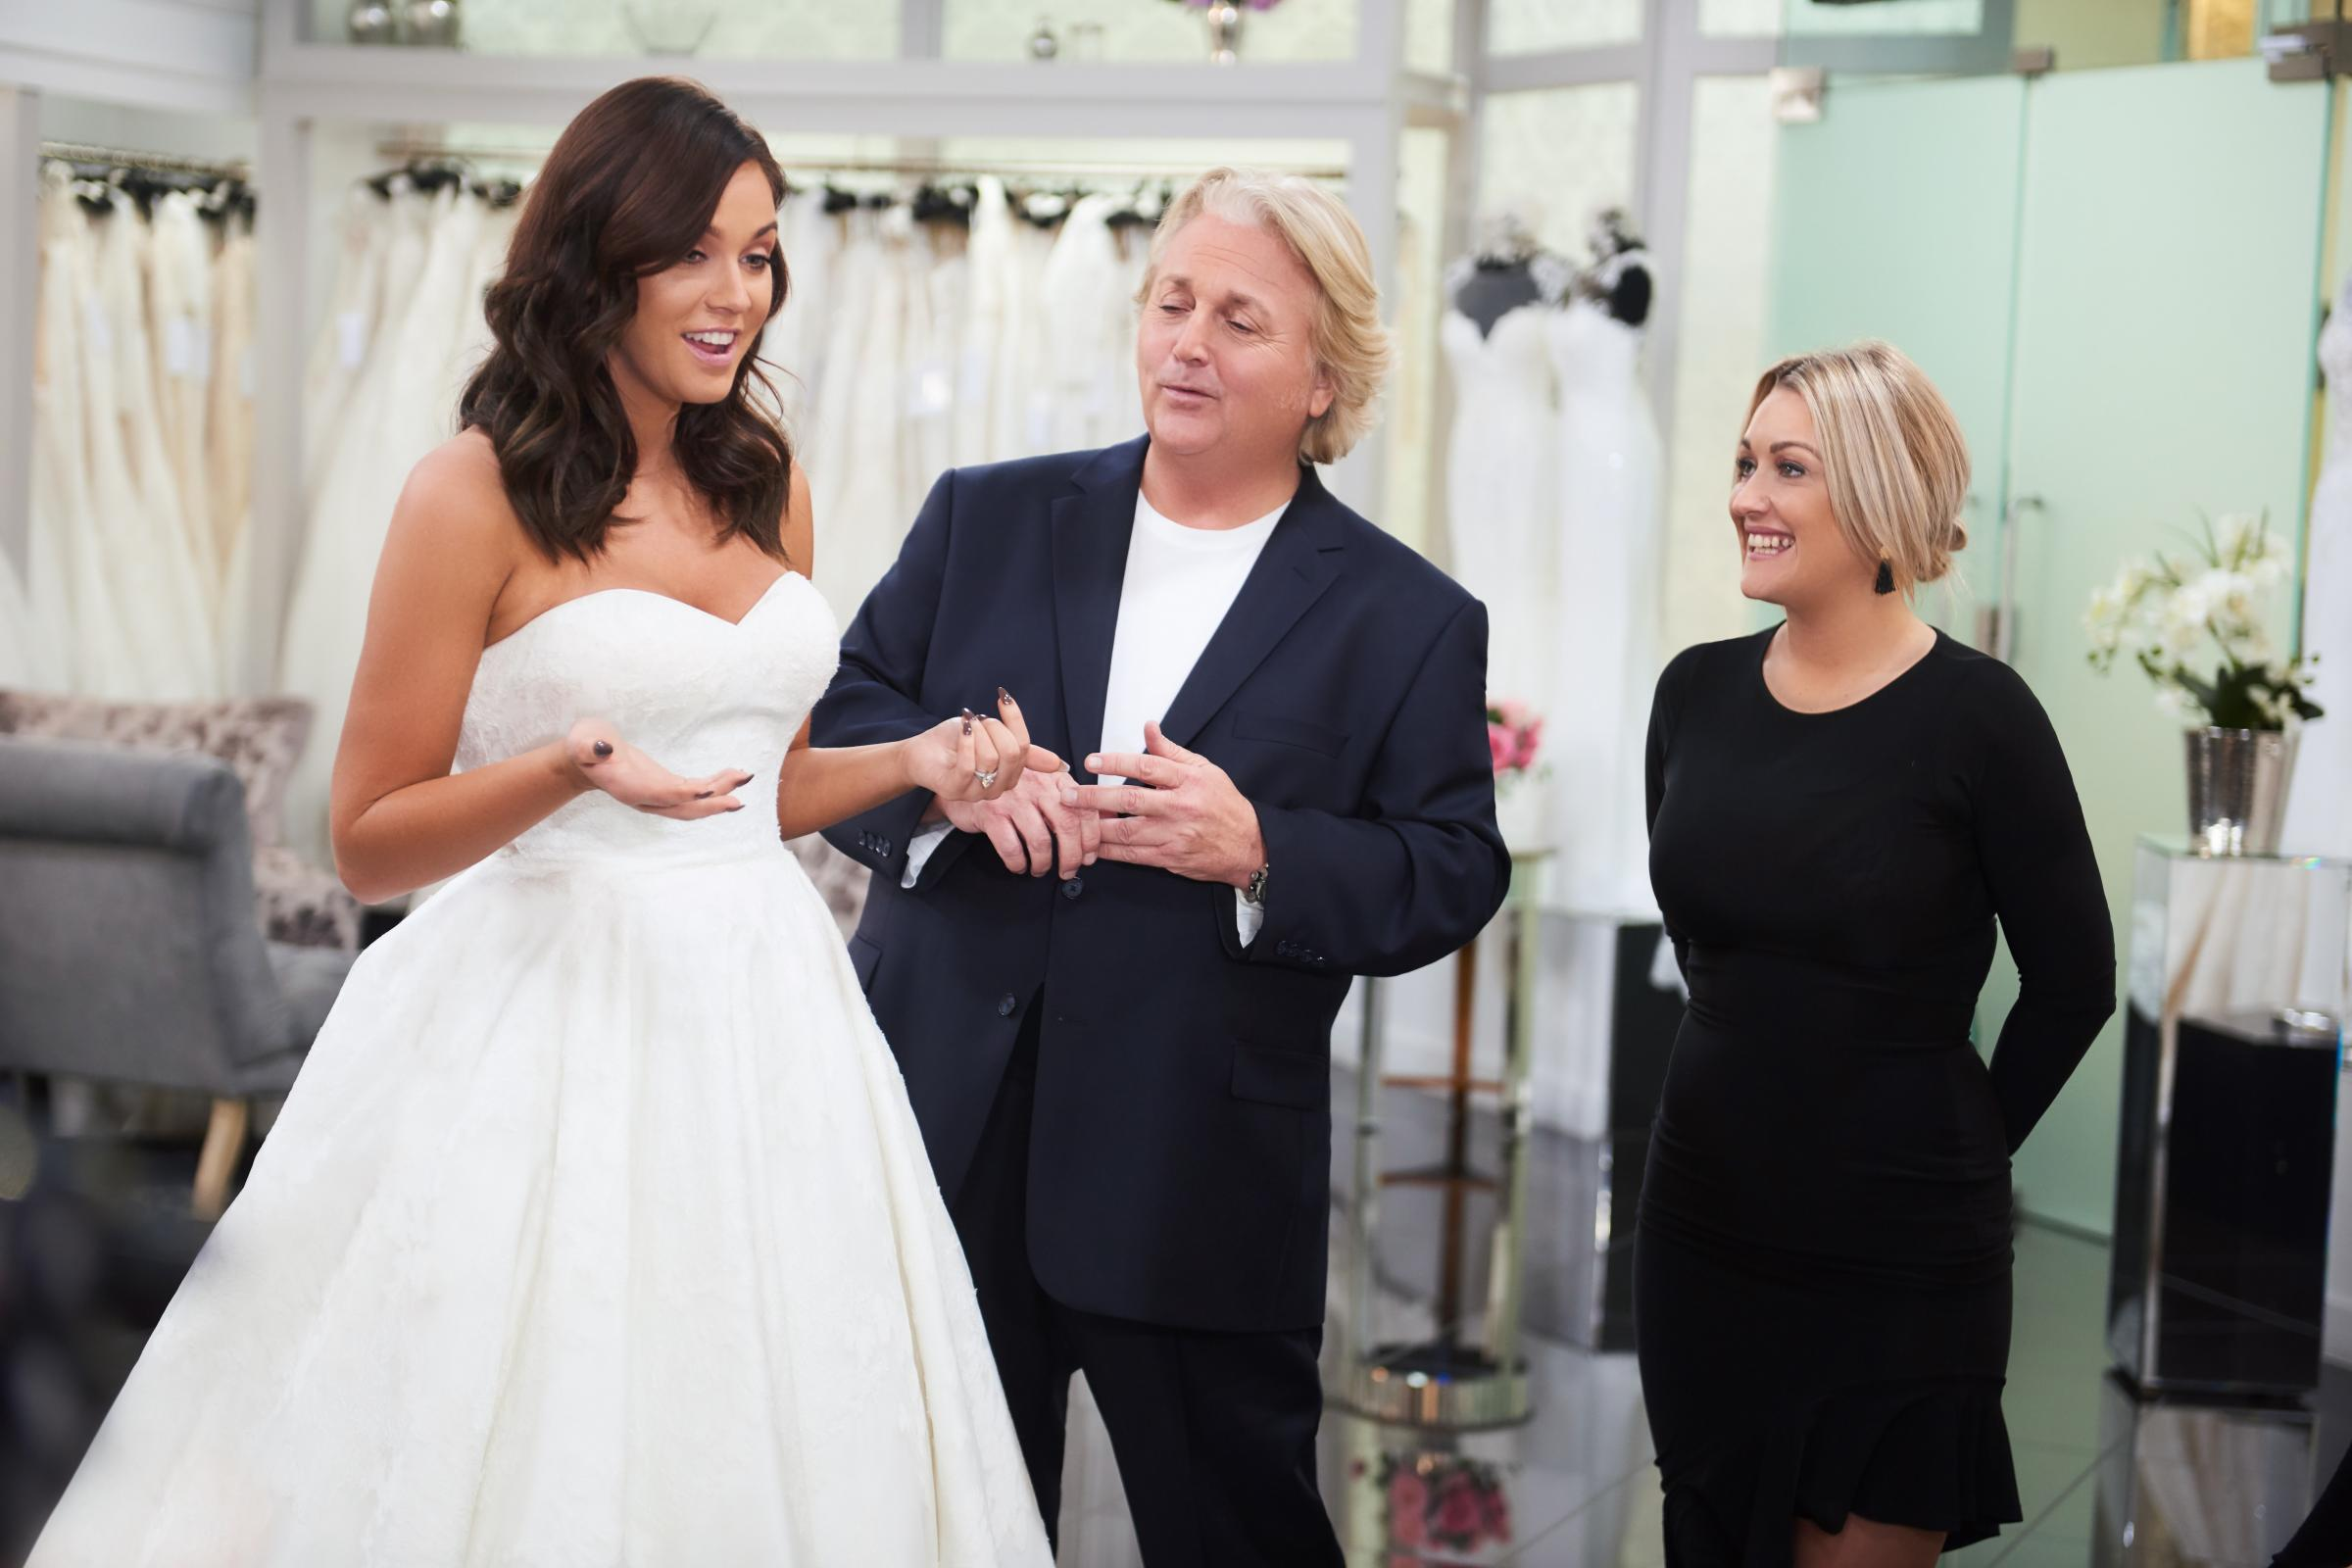 Vicky Pattison discovers what is 'too sexy' while wedding dress shopping (TLC)